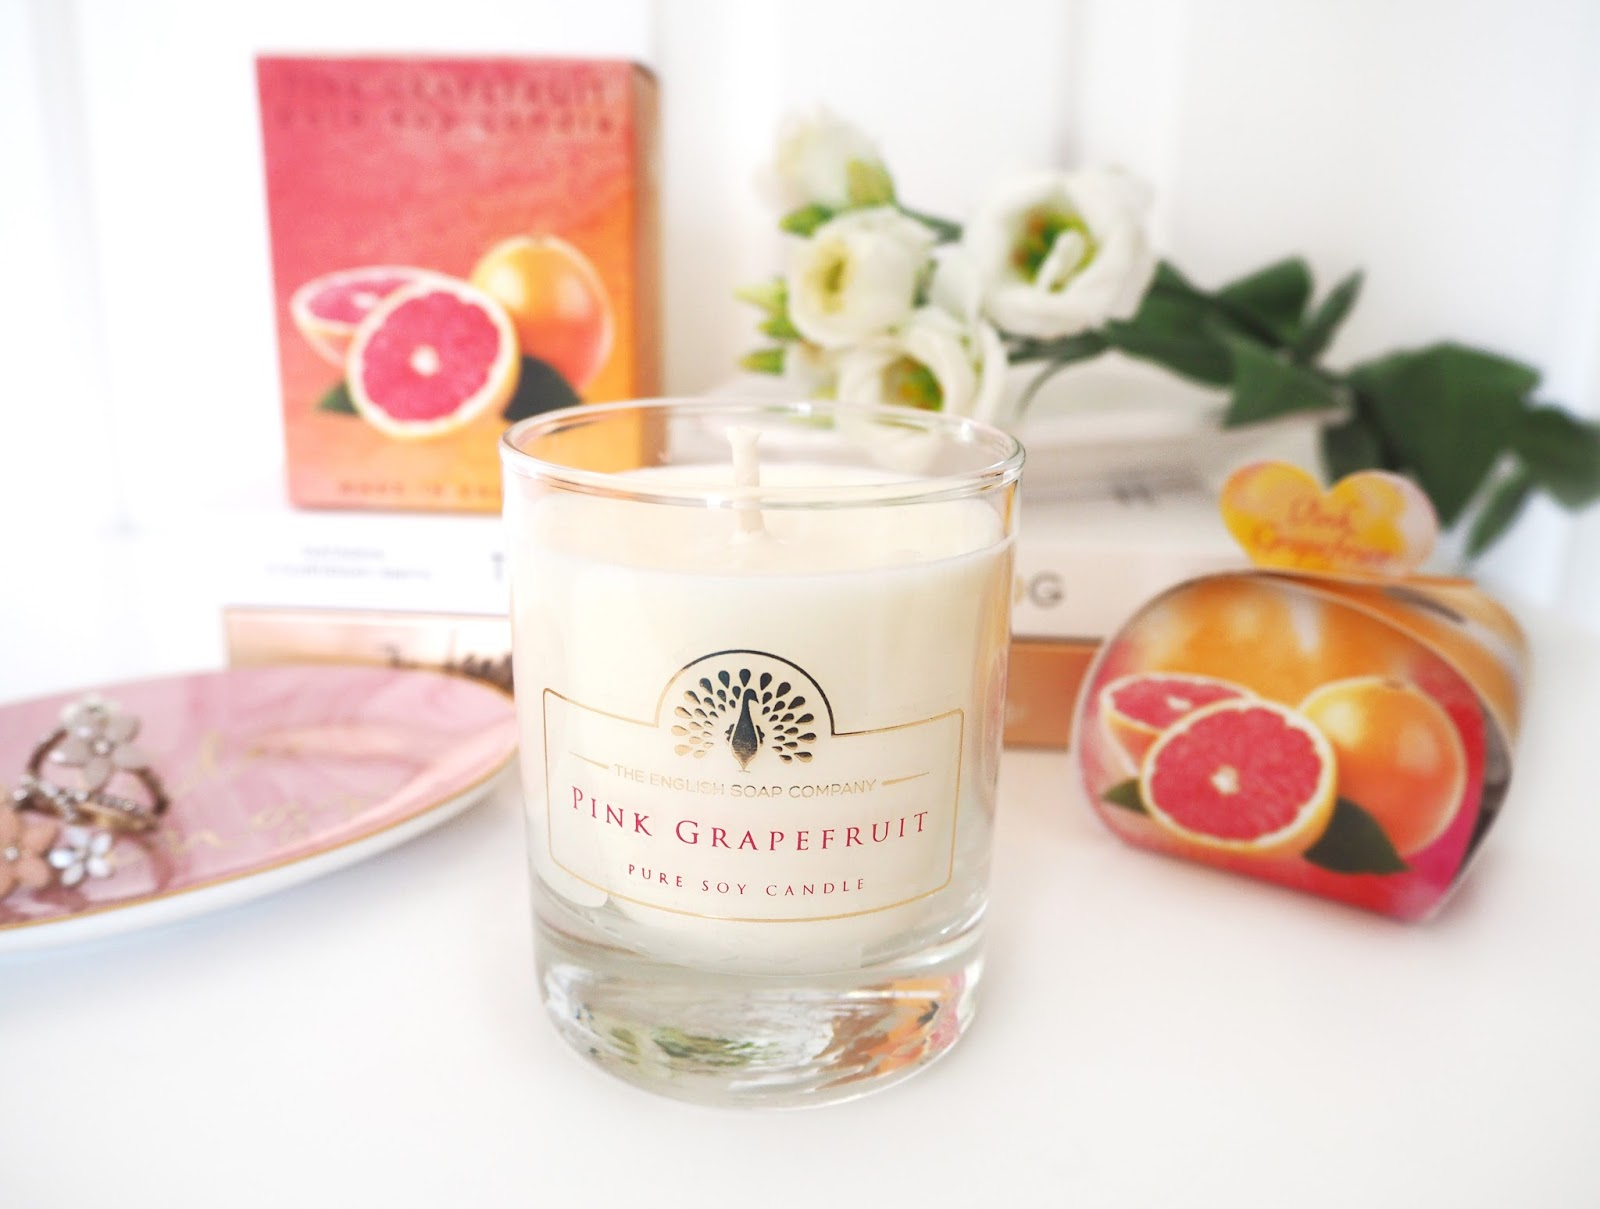 The English Soap Company Pink Grapefruit Collection, Katie Kirk Loves, Handmade Soaps, Candle Review, Handmade Candles, Handmade in the UK, Fragranced Candles, Handmade Gifts, UK Blogger, Beauty Blogger, Candle Blogger, Lifestyle Blogger